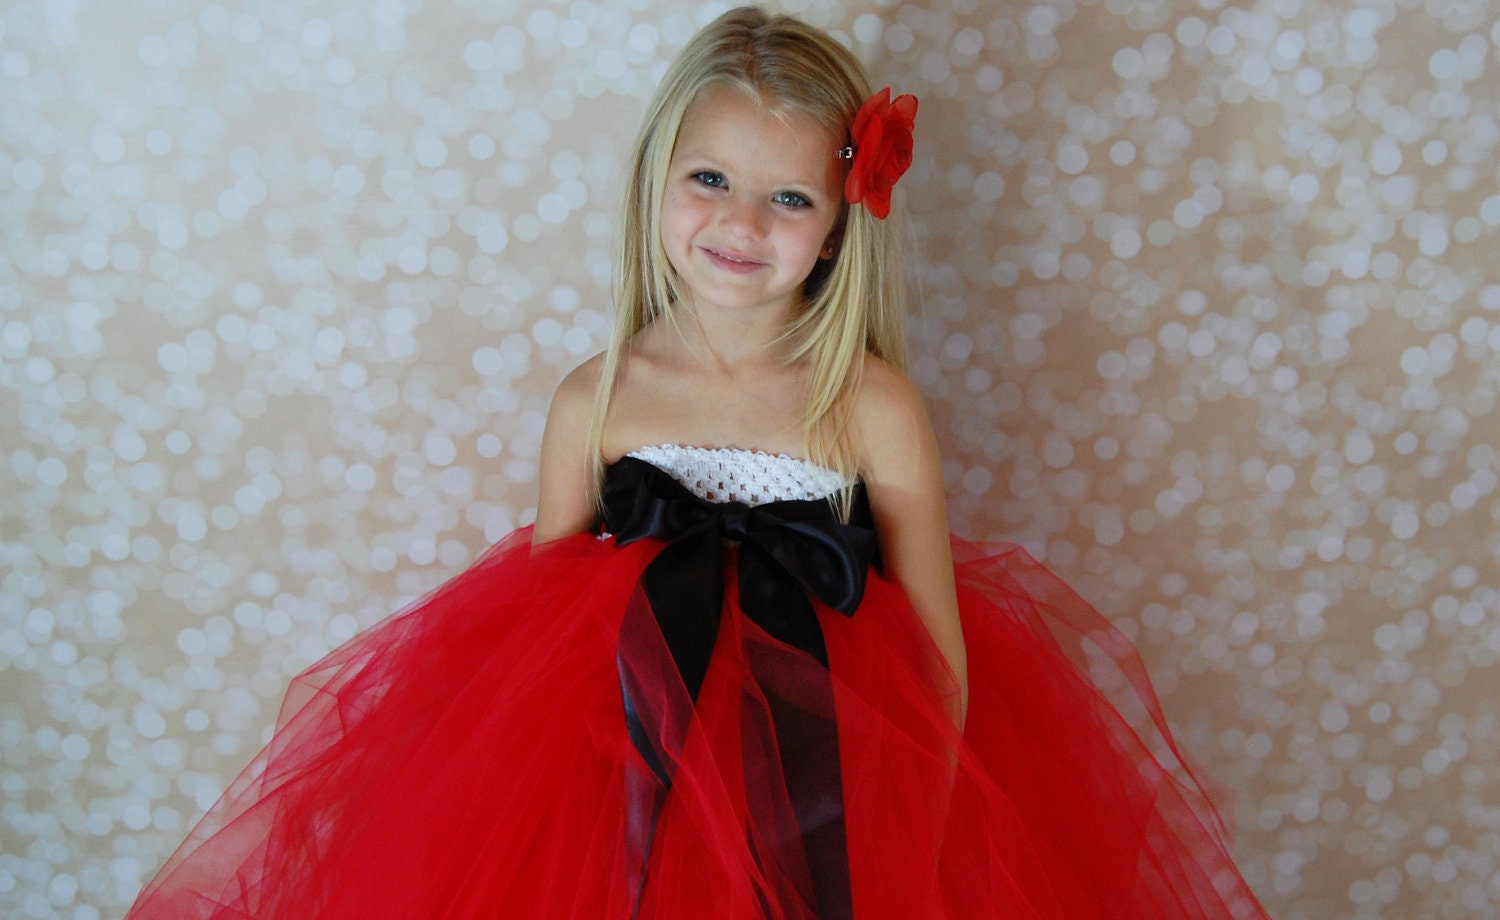 Santa Christmas Tutu Dress Red Black and White 8-10 years - PoshPixieTutu